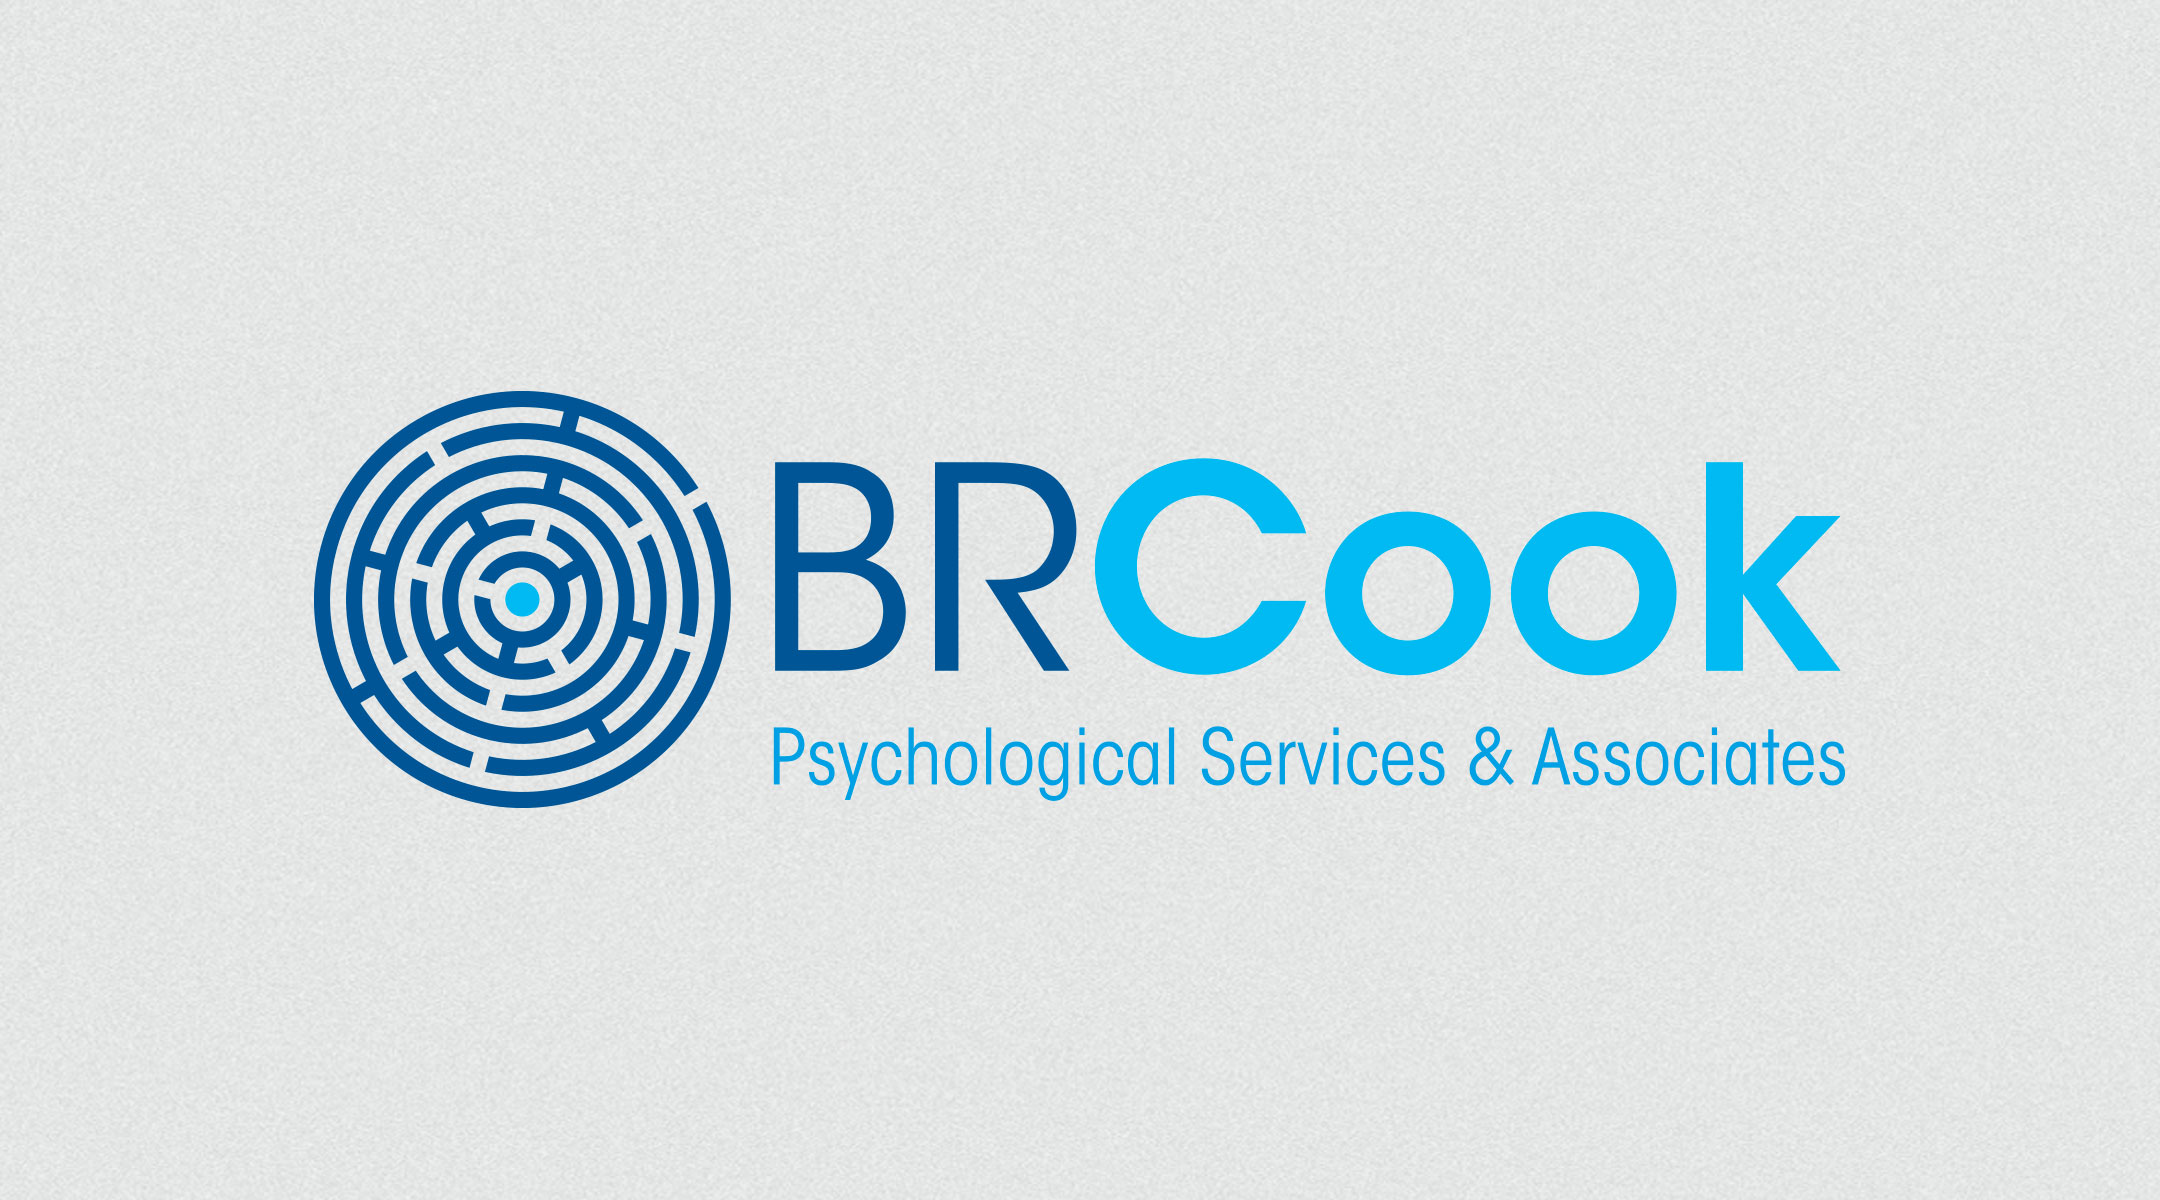 BR Cook Psychological Services & Associates Logo